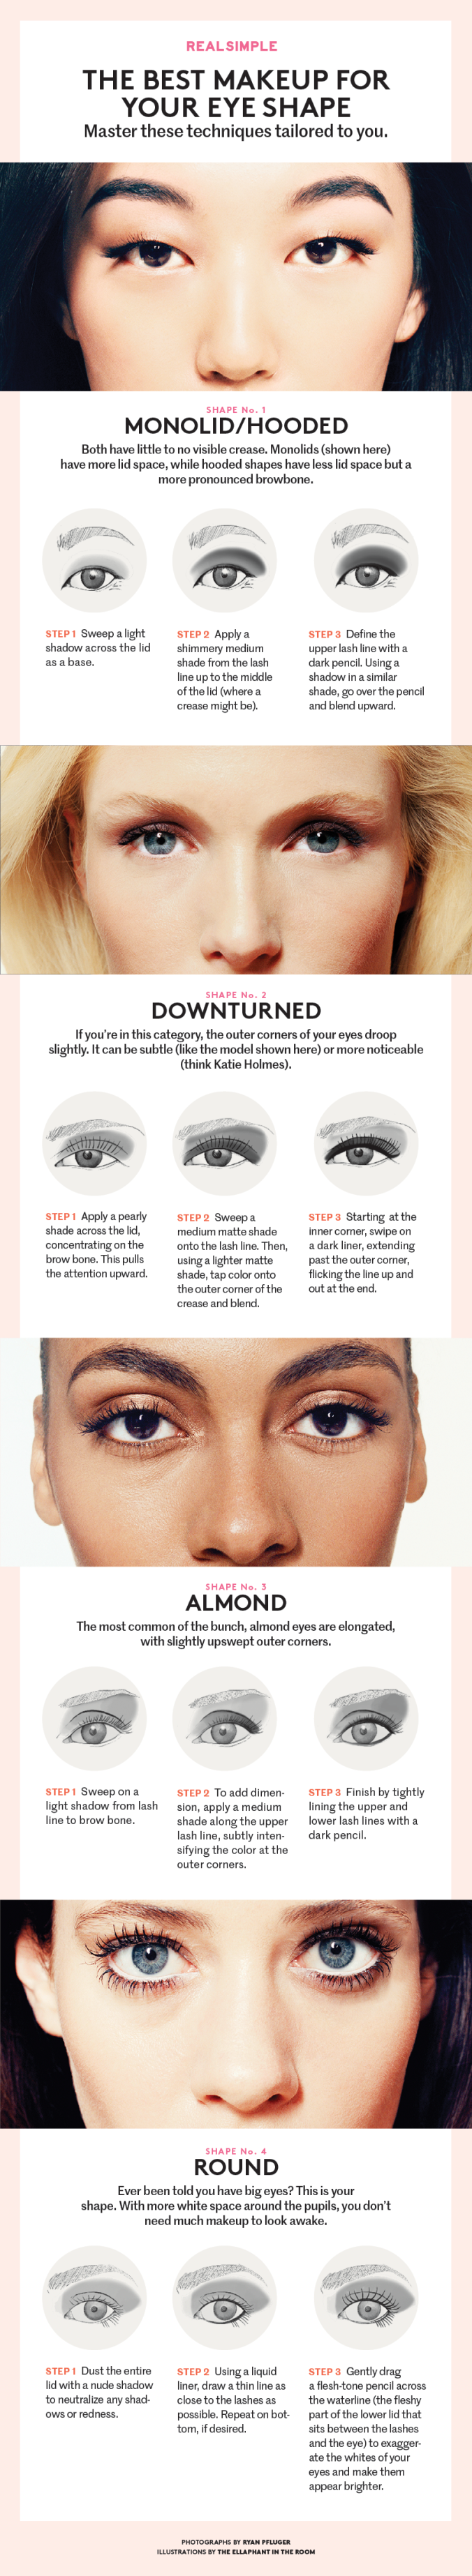 The best makeup for your eye shape great to know now i definitely